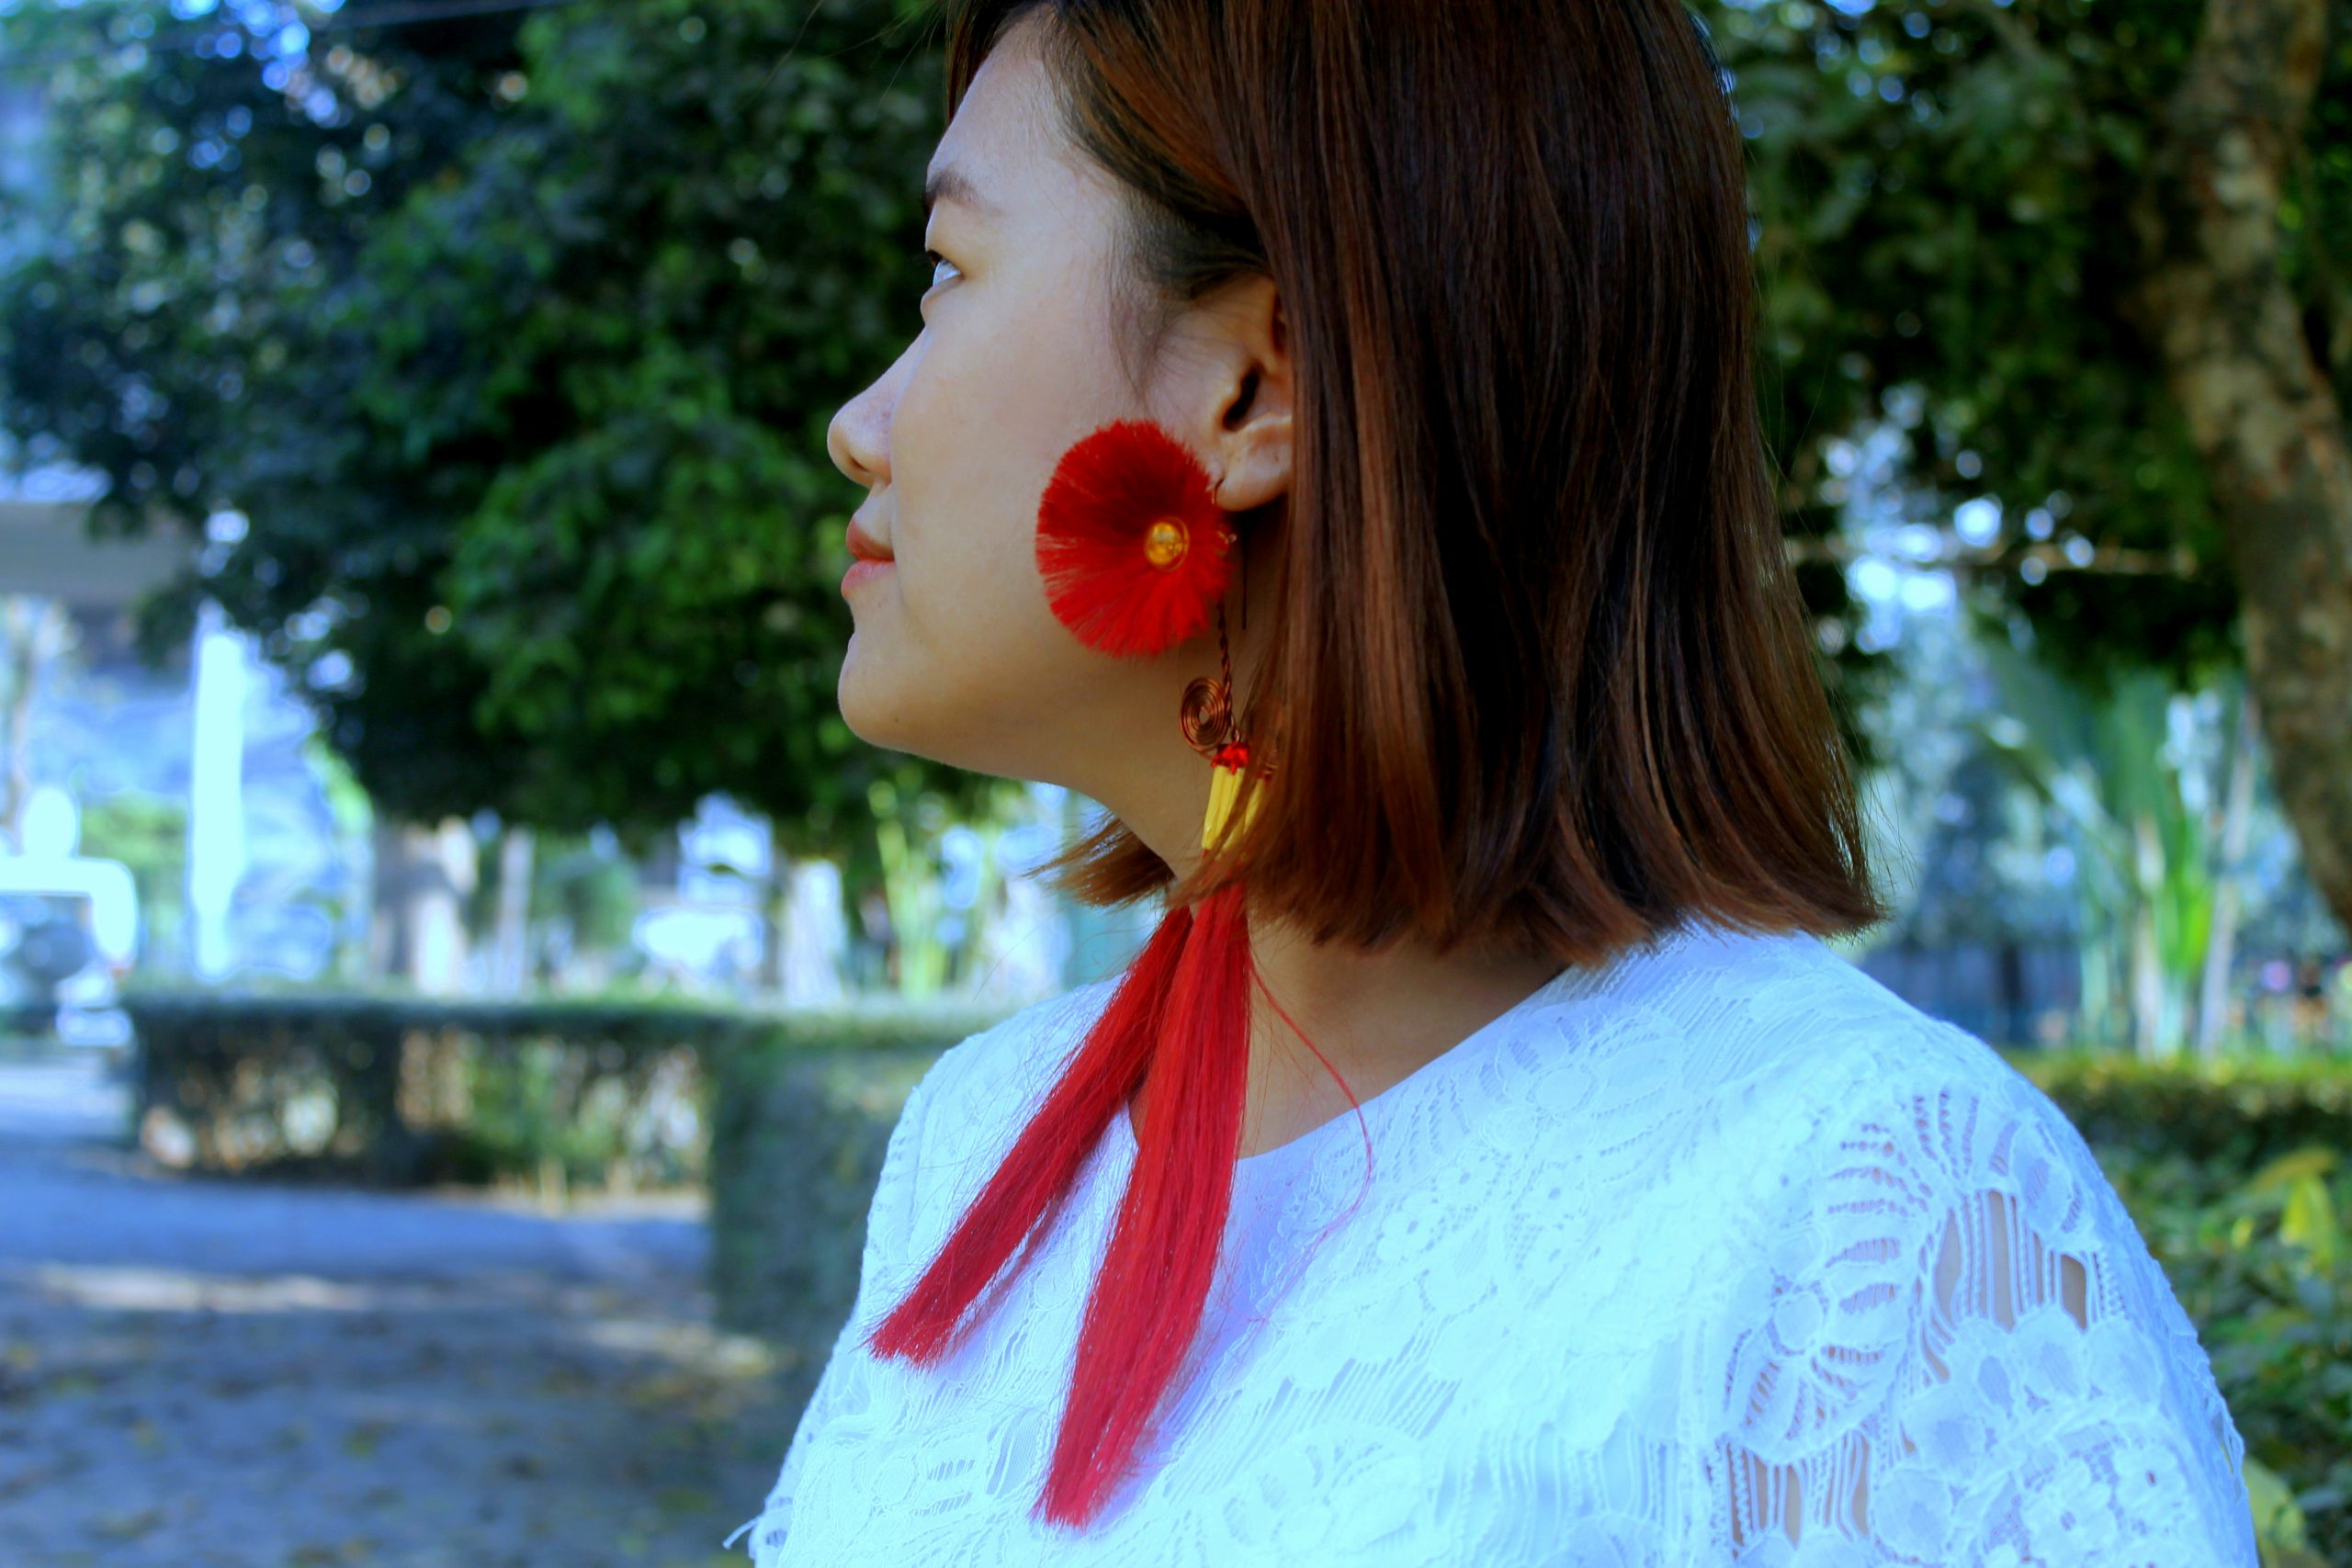 A girl with floral earrings